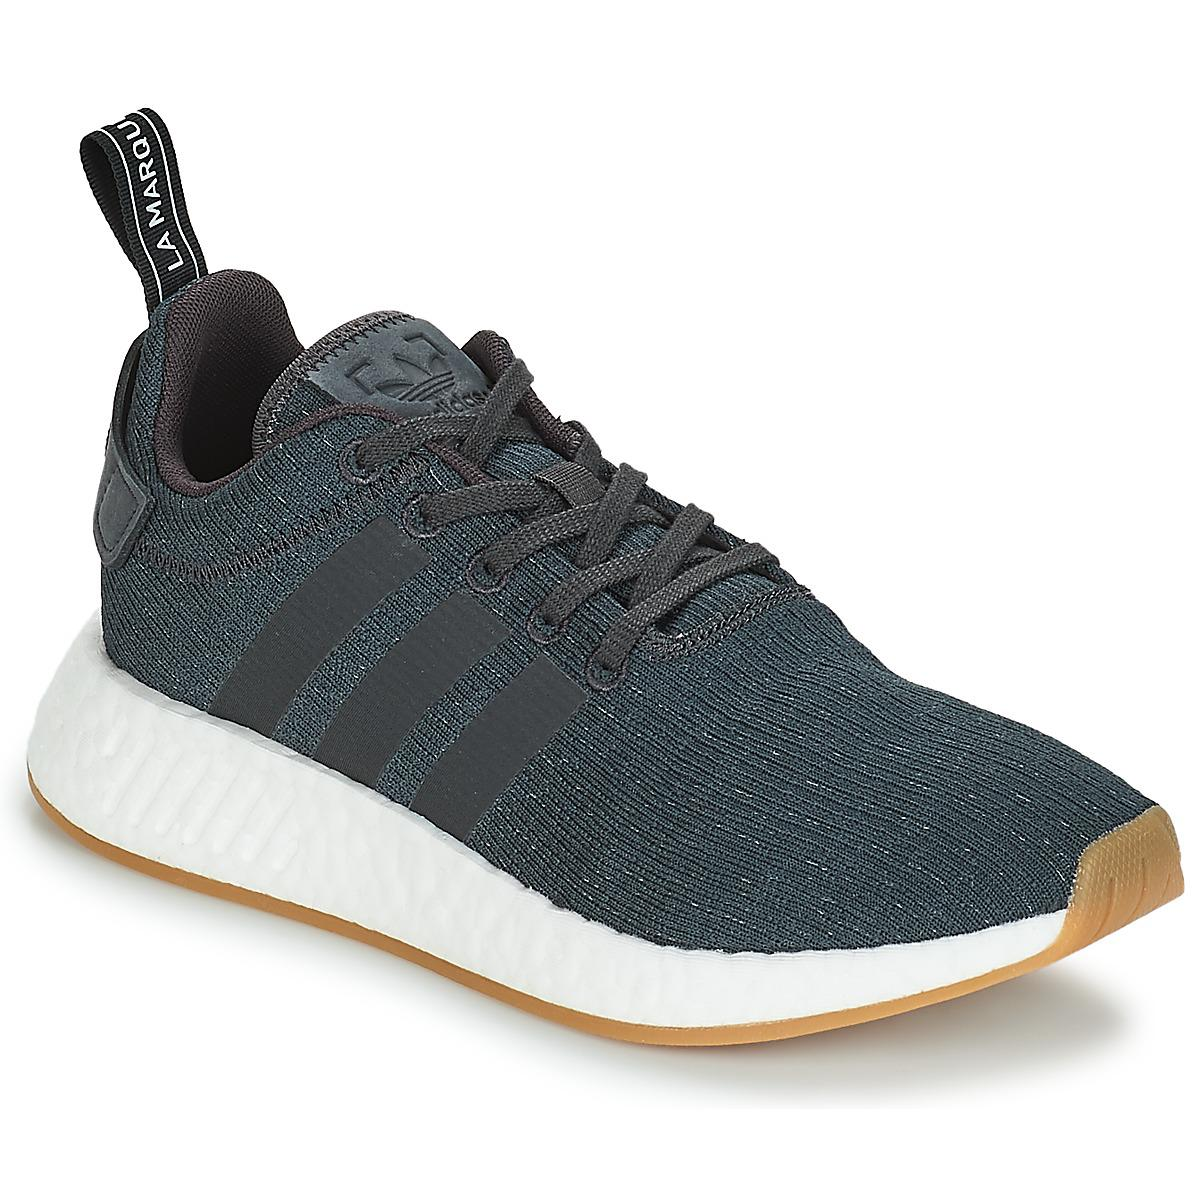 ba89f581e adidas Nmd R2 Summer Men s Shoes (trainers) In Multicolour in Blue ...